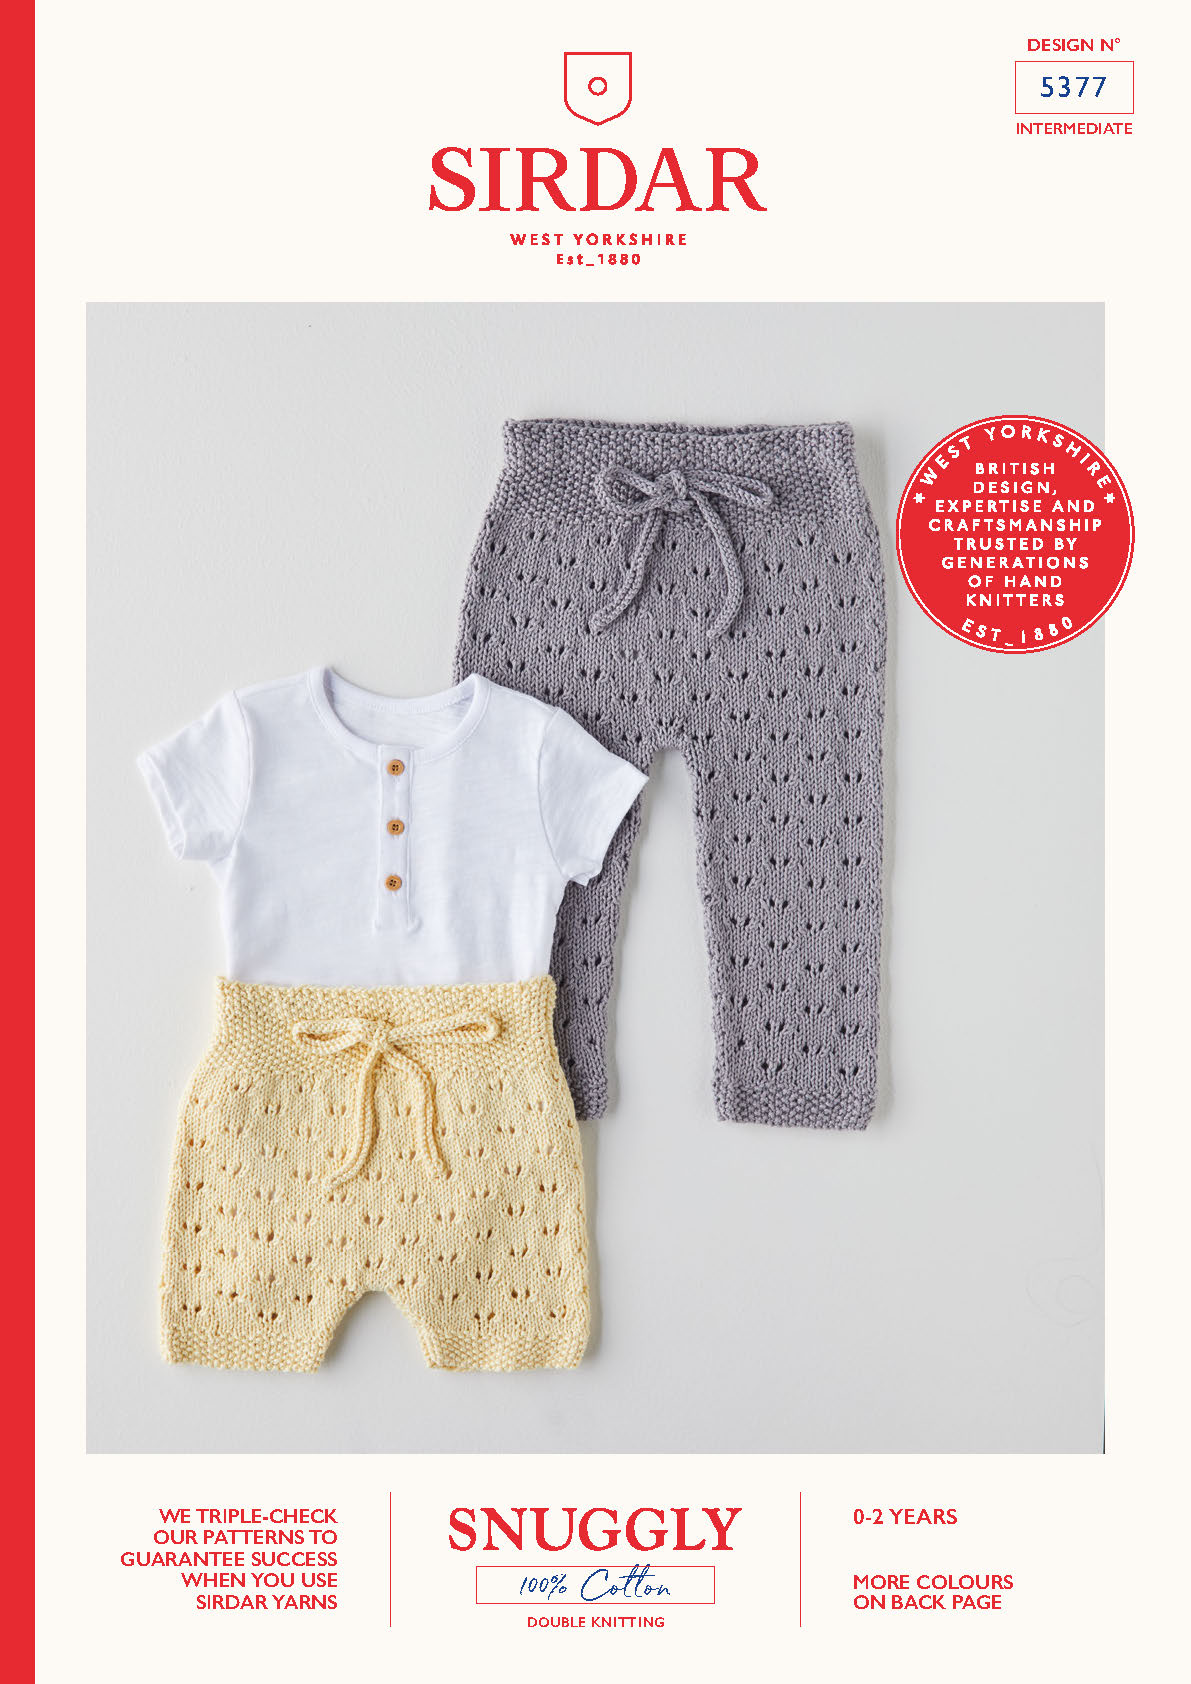 Sirdar Pattern Snuggly 100% Cotton DK 5377 (Download) product image